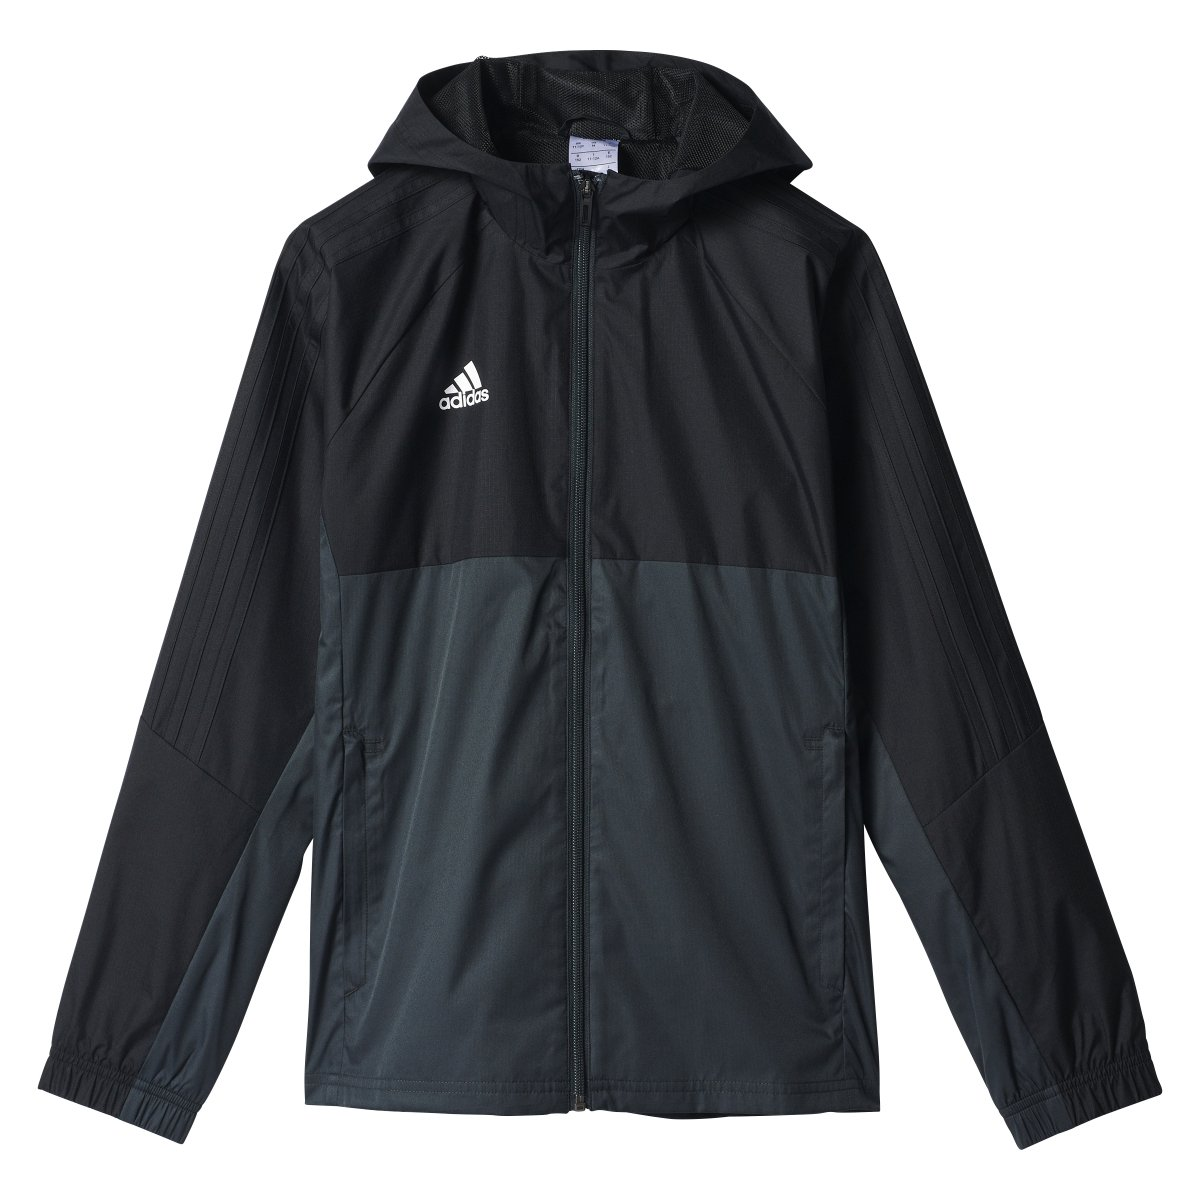 adidas Tiro 17 Jacket - Boys' Black/Dark Grey/White, L